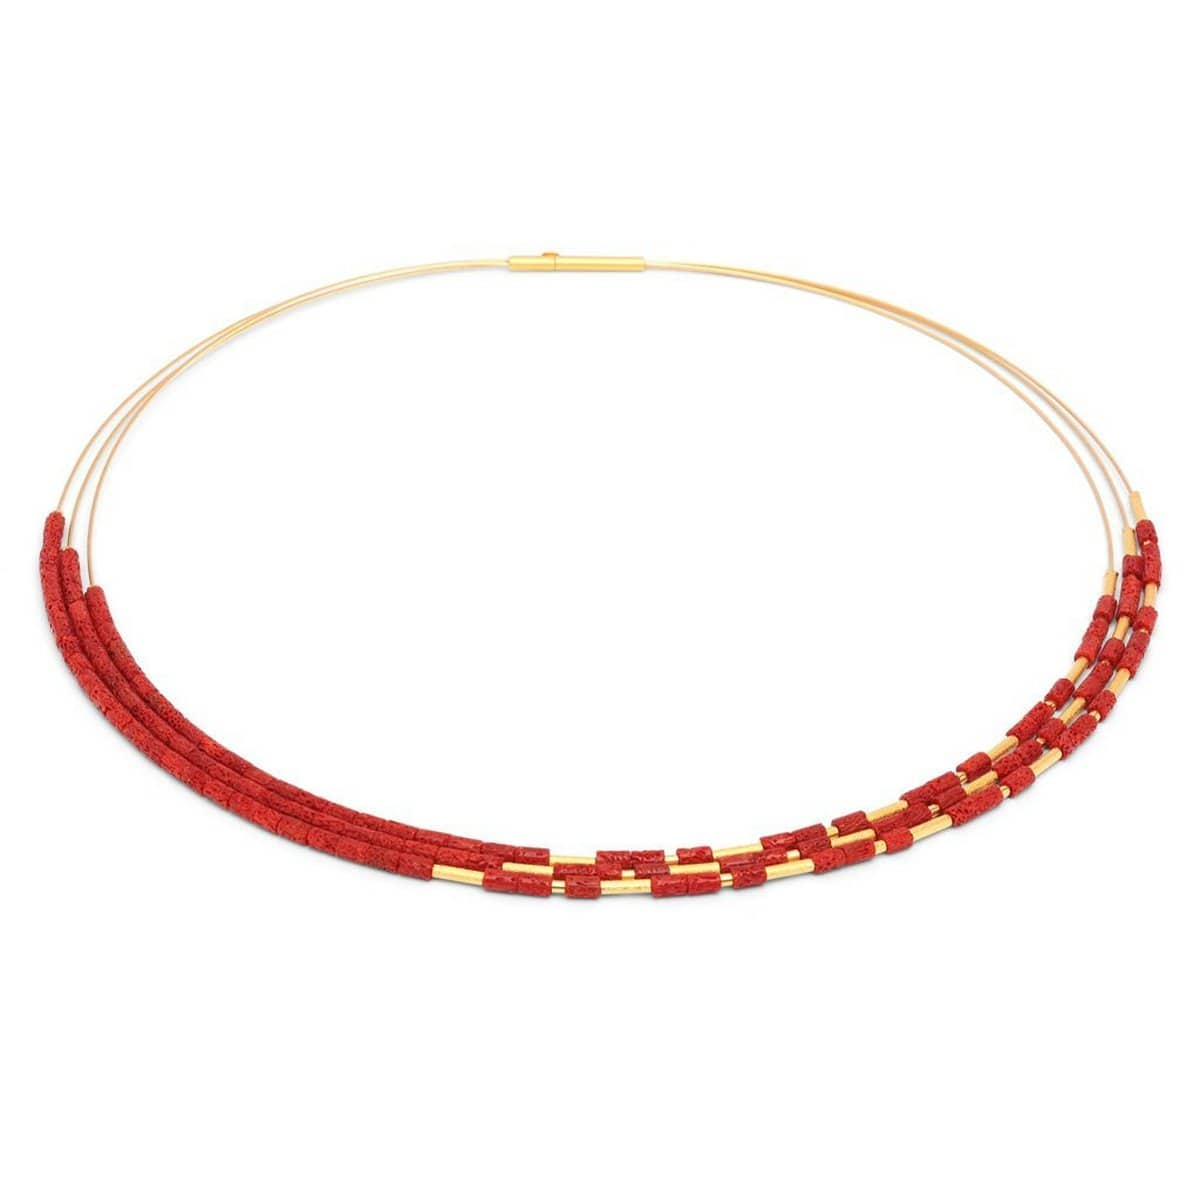 Clia Red Coral Necklace - 85231296-Bernd Wolf-Renee Taylor Gallery